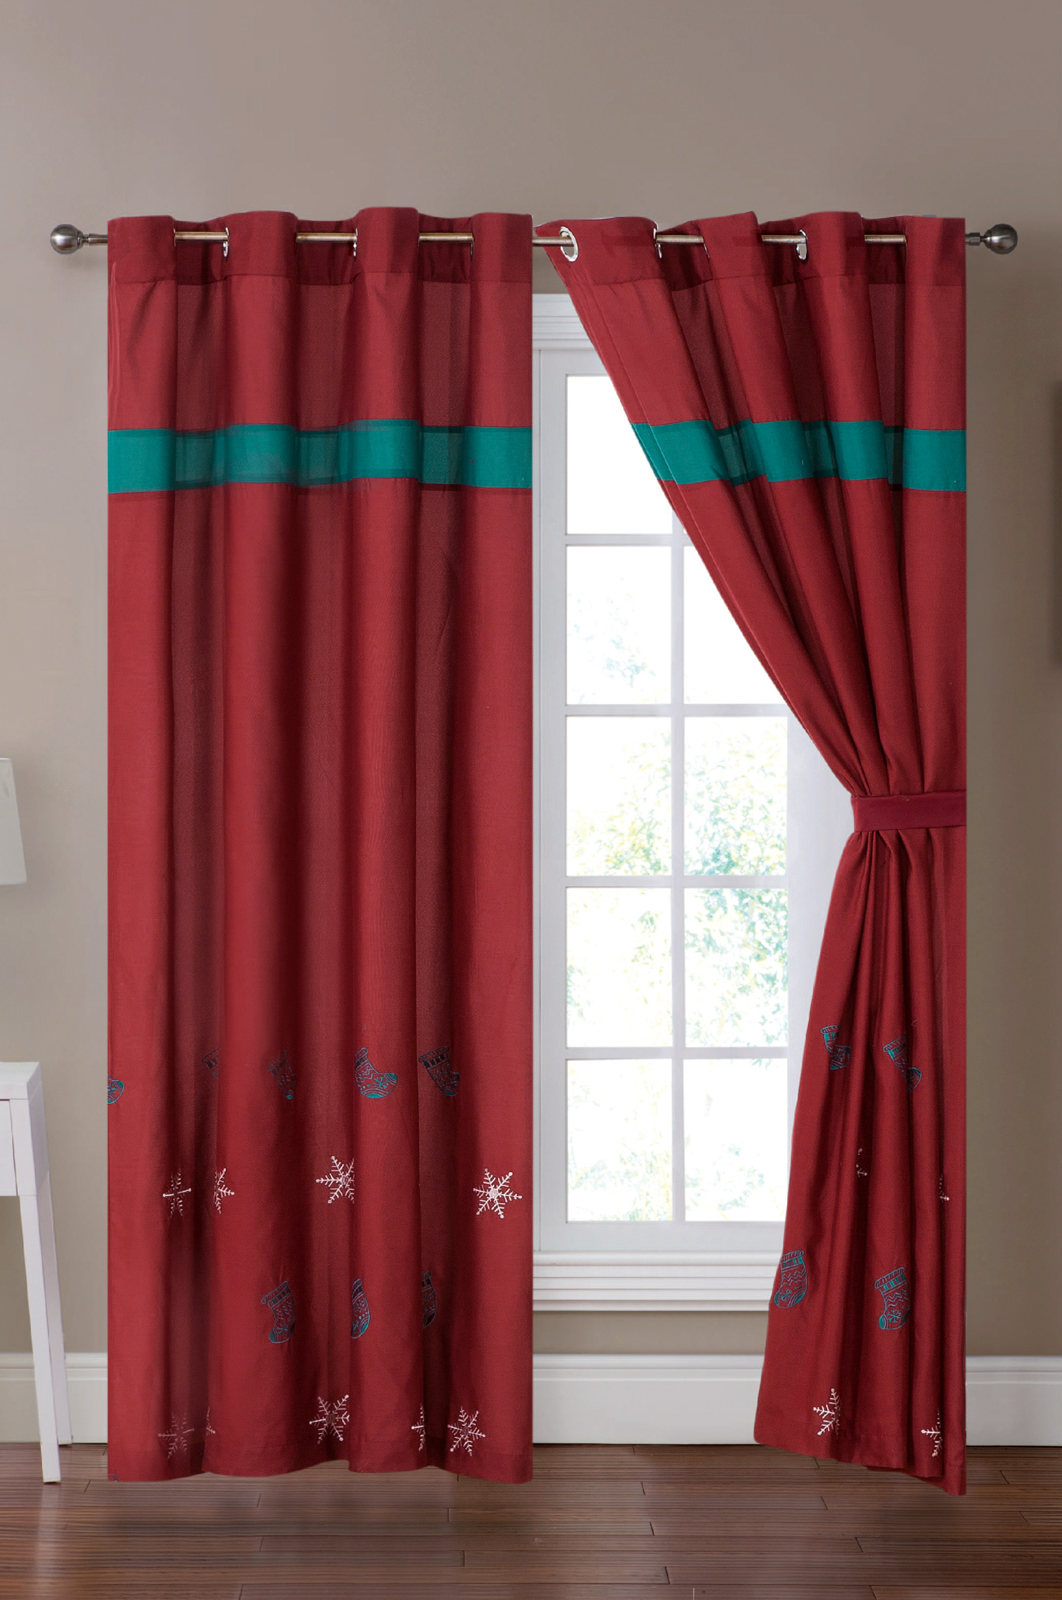 Teal Blur Sheer Curtains Living Room Decorations: 4-P Xmas Stocking Snowflake Embroidery Curtain Set